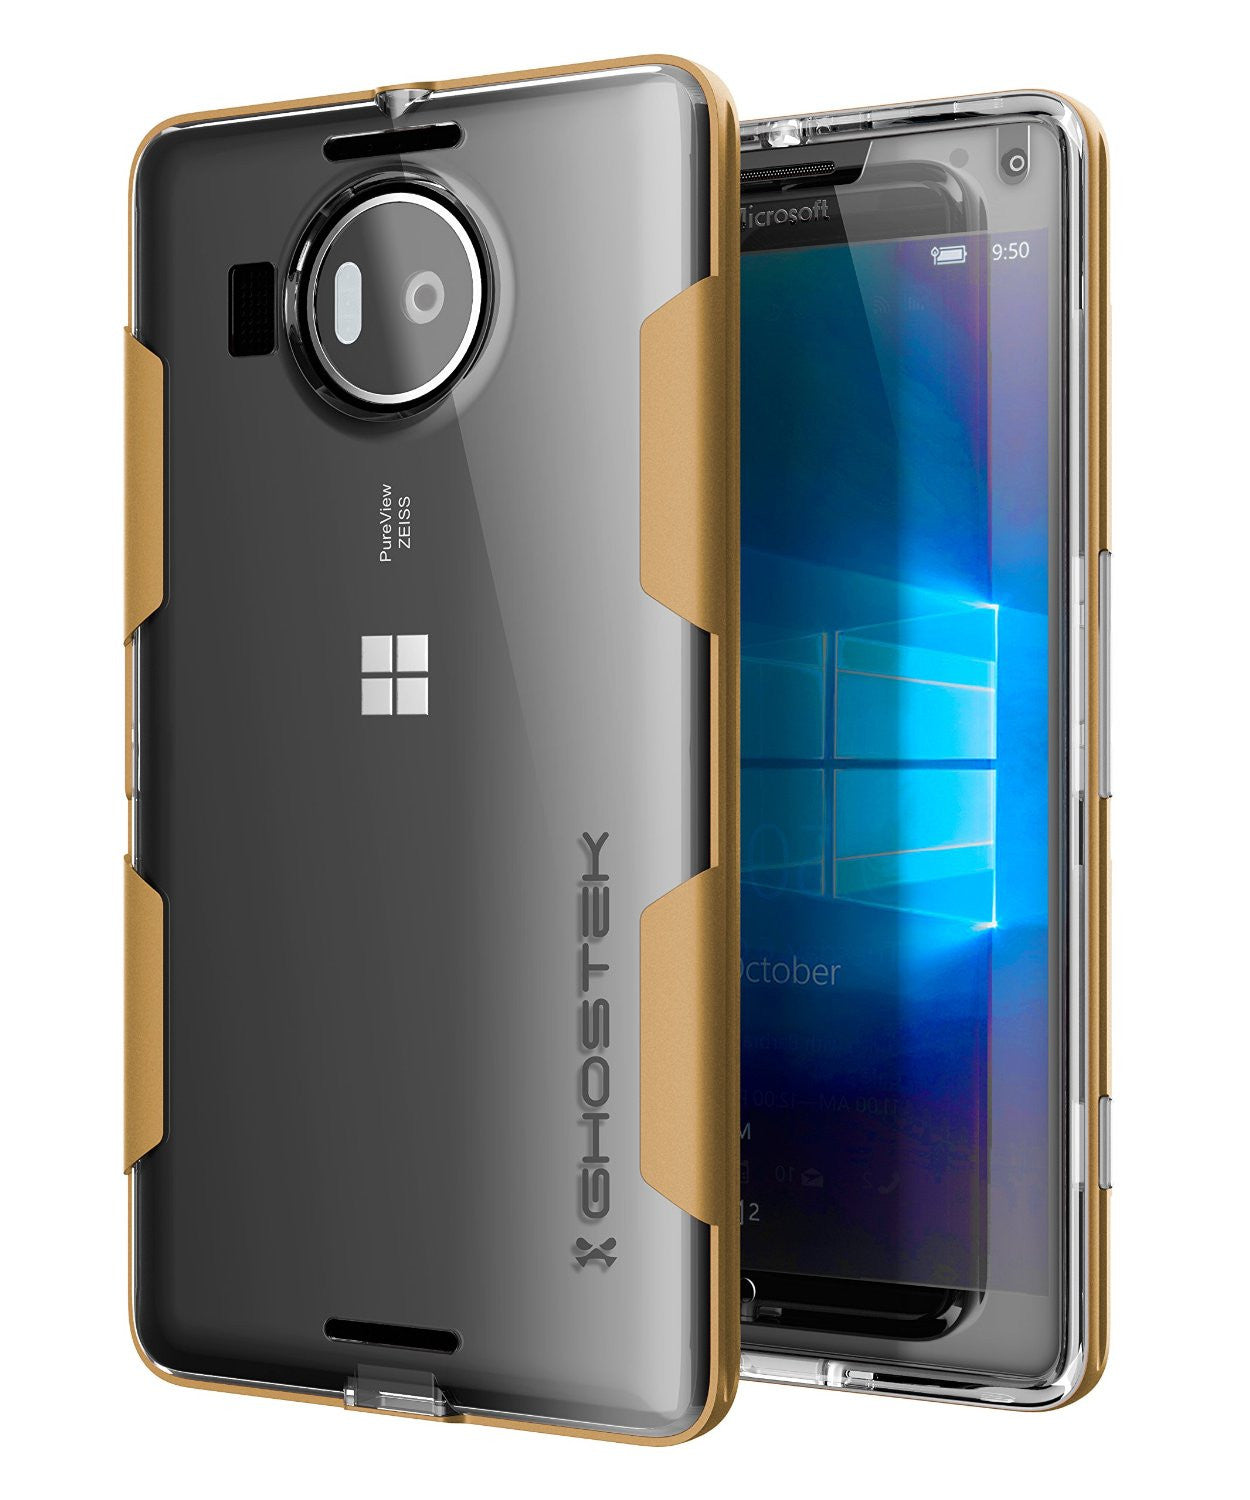 Microsoft 950 Case - Ghostek Cloak Gold Series for Nokia Lumia